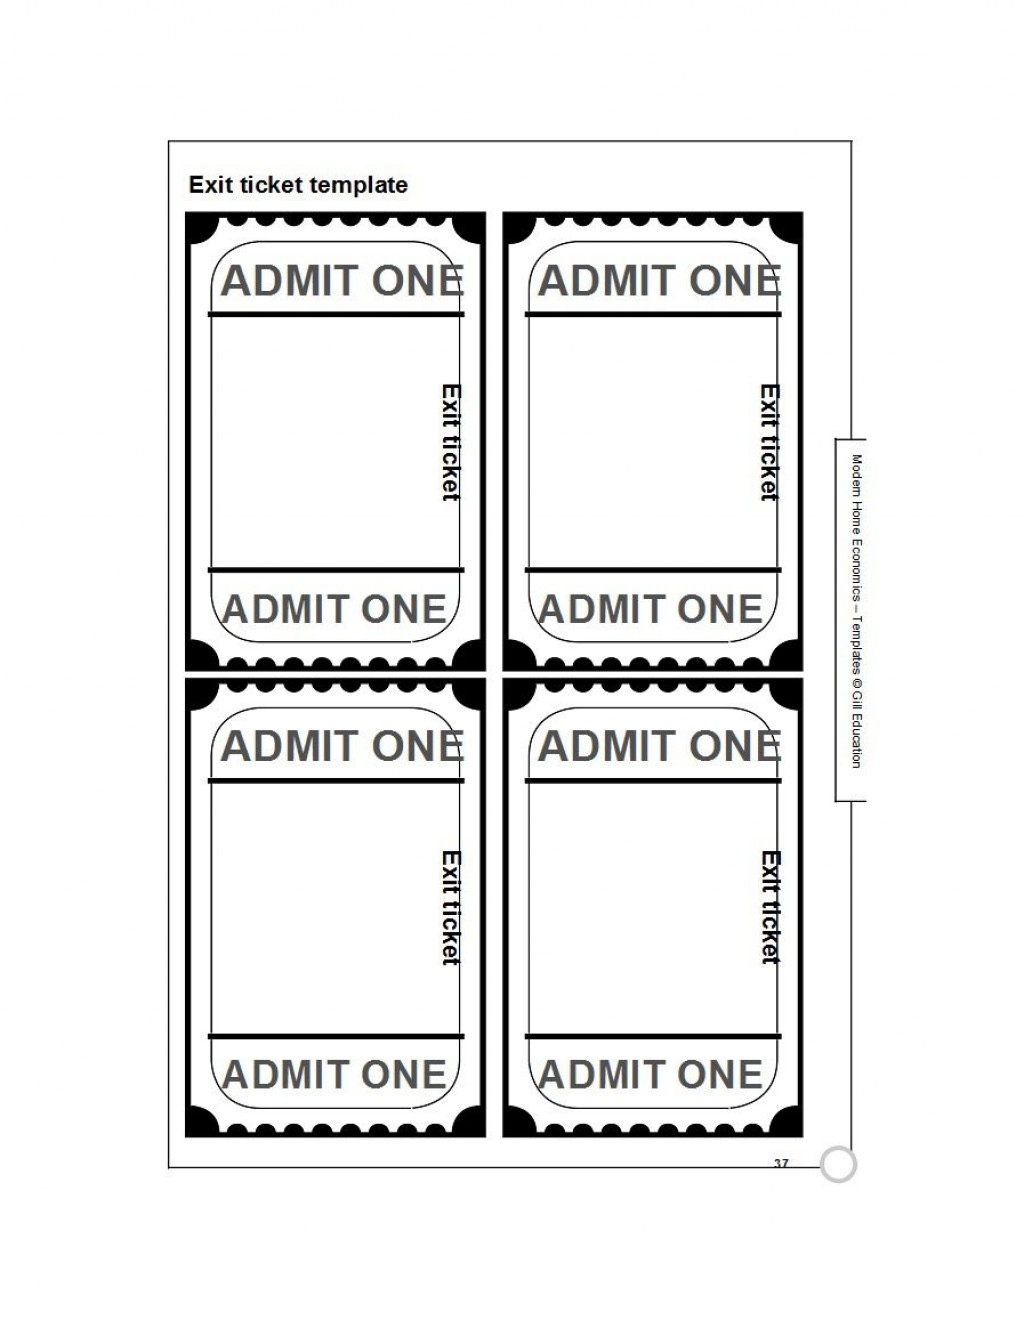 007 Stirring Free Printable Ticket Template High Resolution  Raffle Printing Airline For Gift ConcertLarge